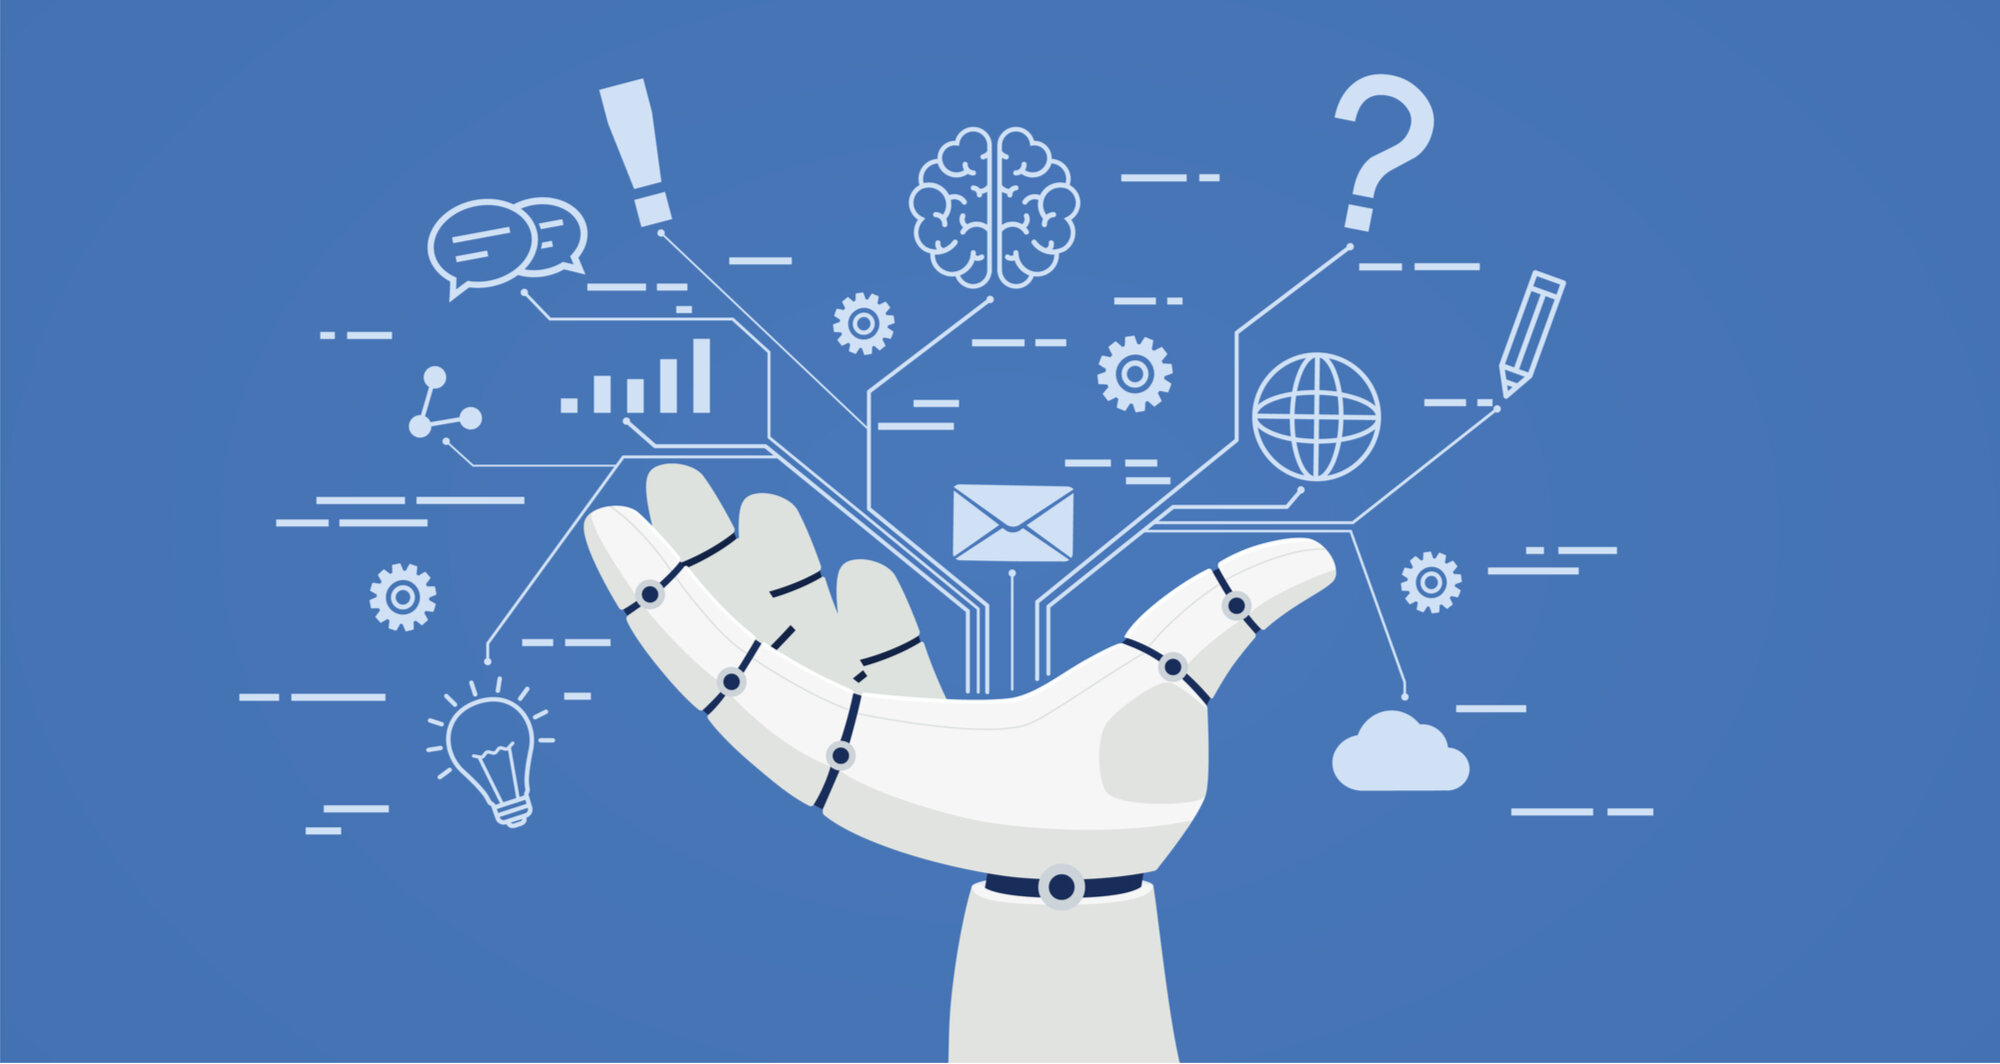 ai and machine learning in business